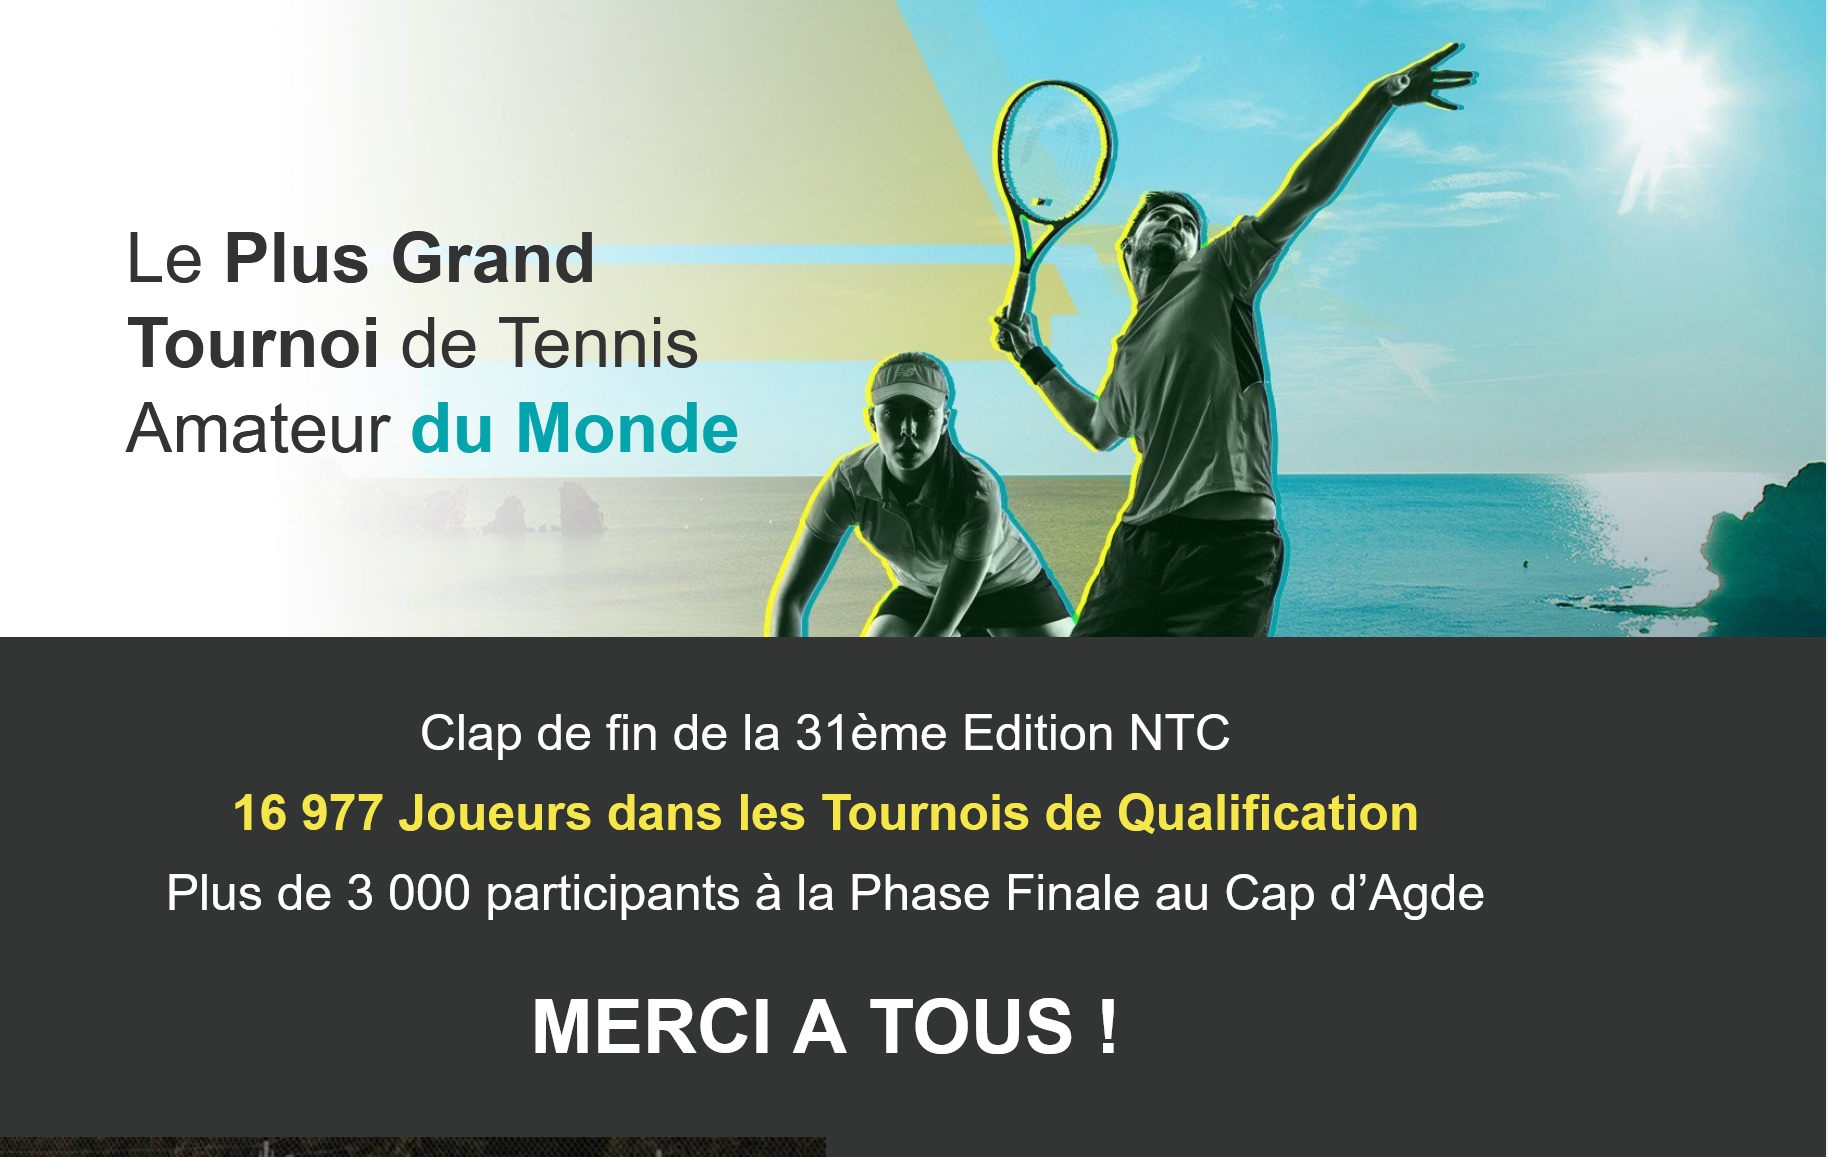 La National Tennis Cup : Le Plus Grand Tournoi de Tennis Amateur du Monde